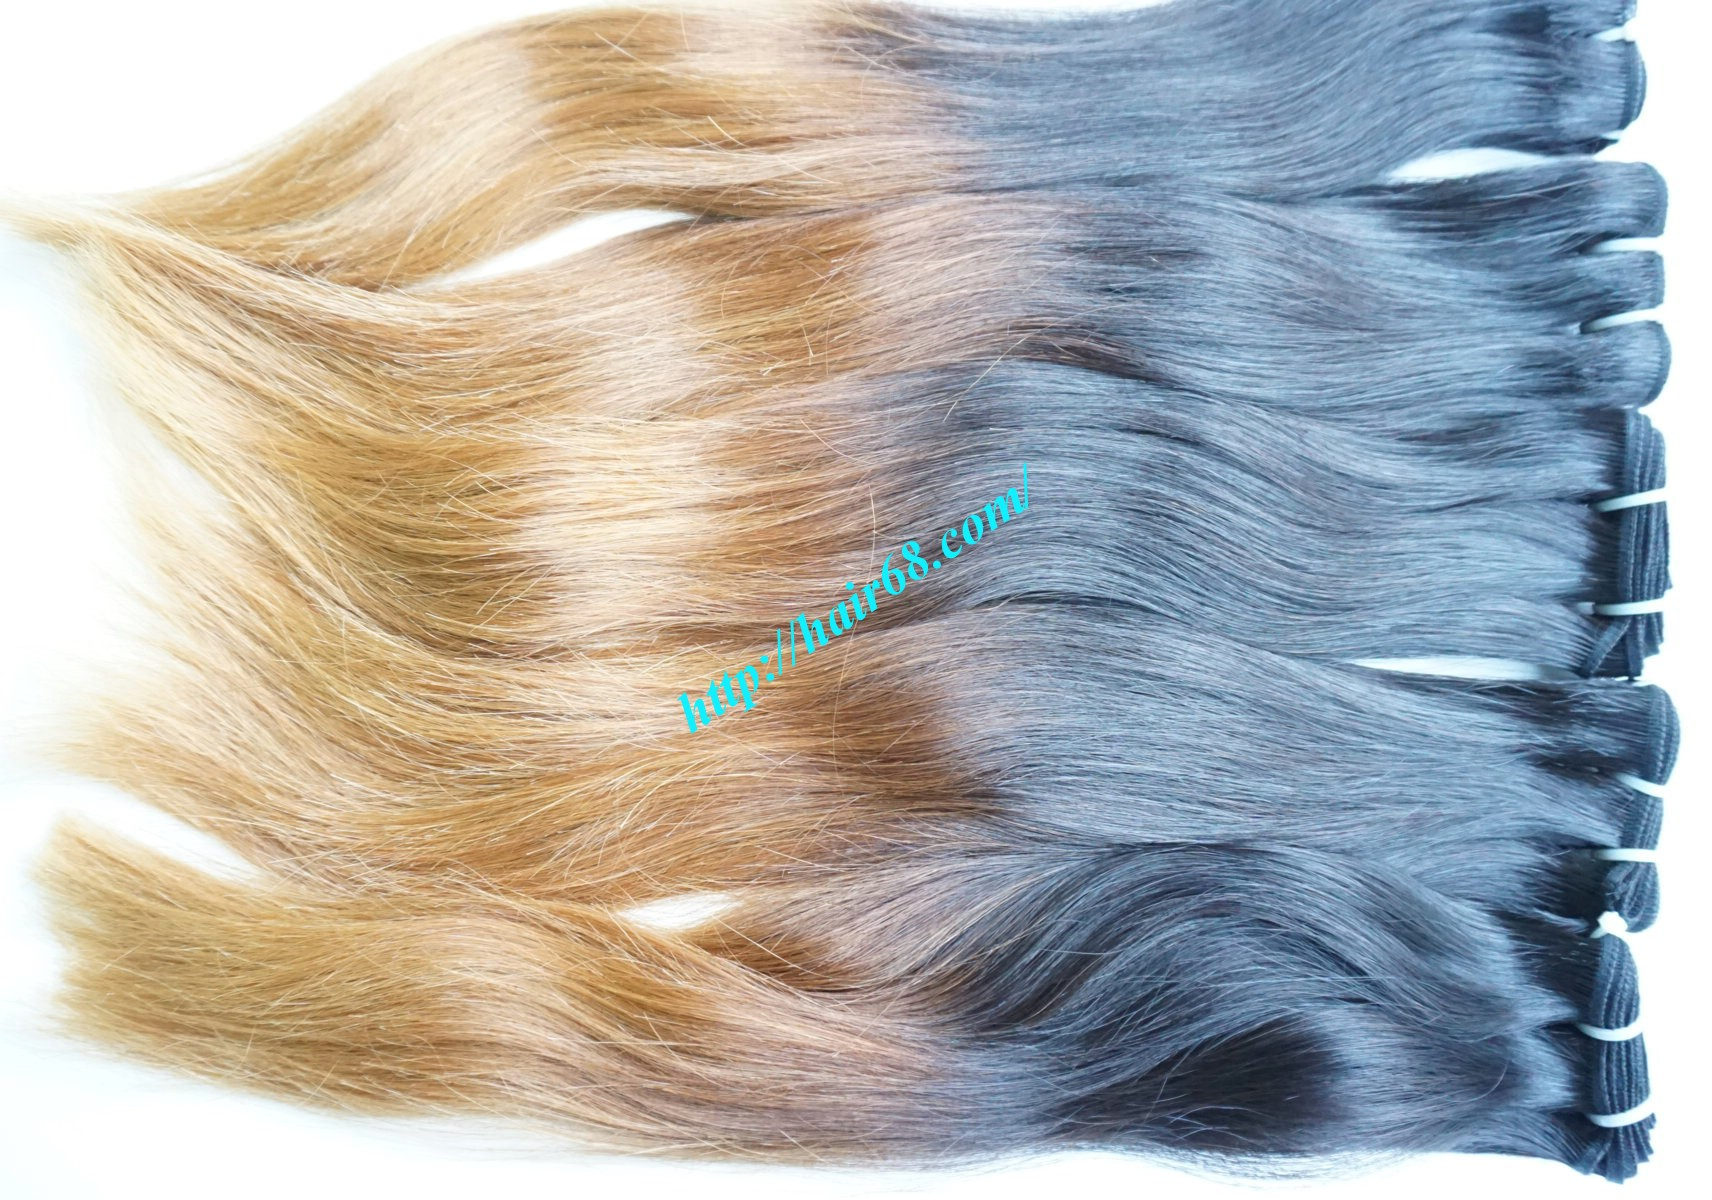 18 inch ombre hair extensions vietnam hair 12